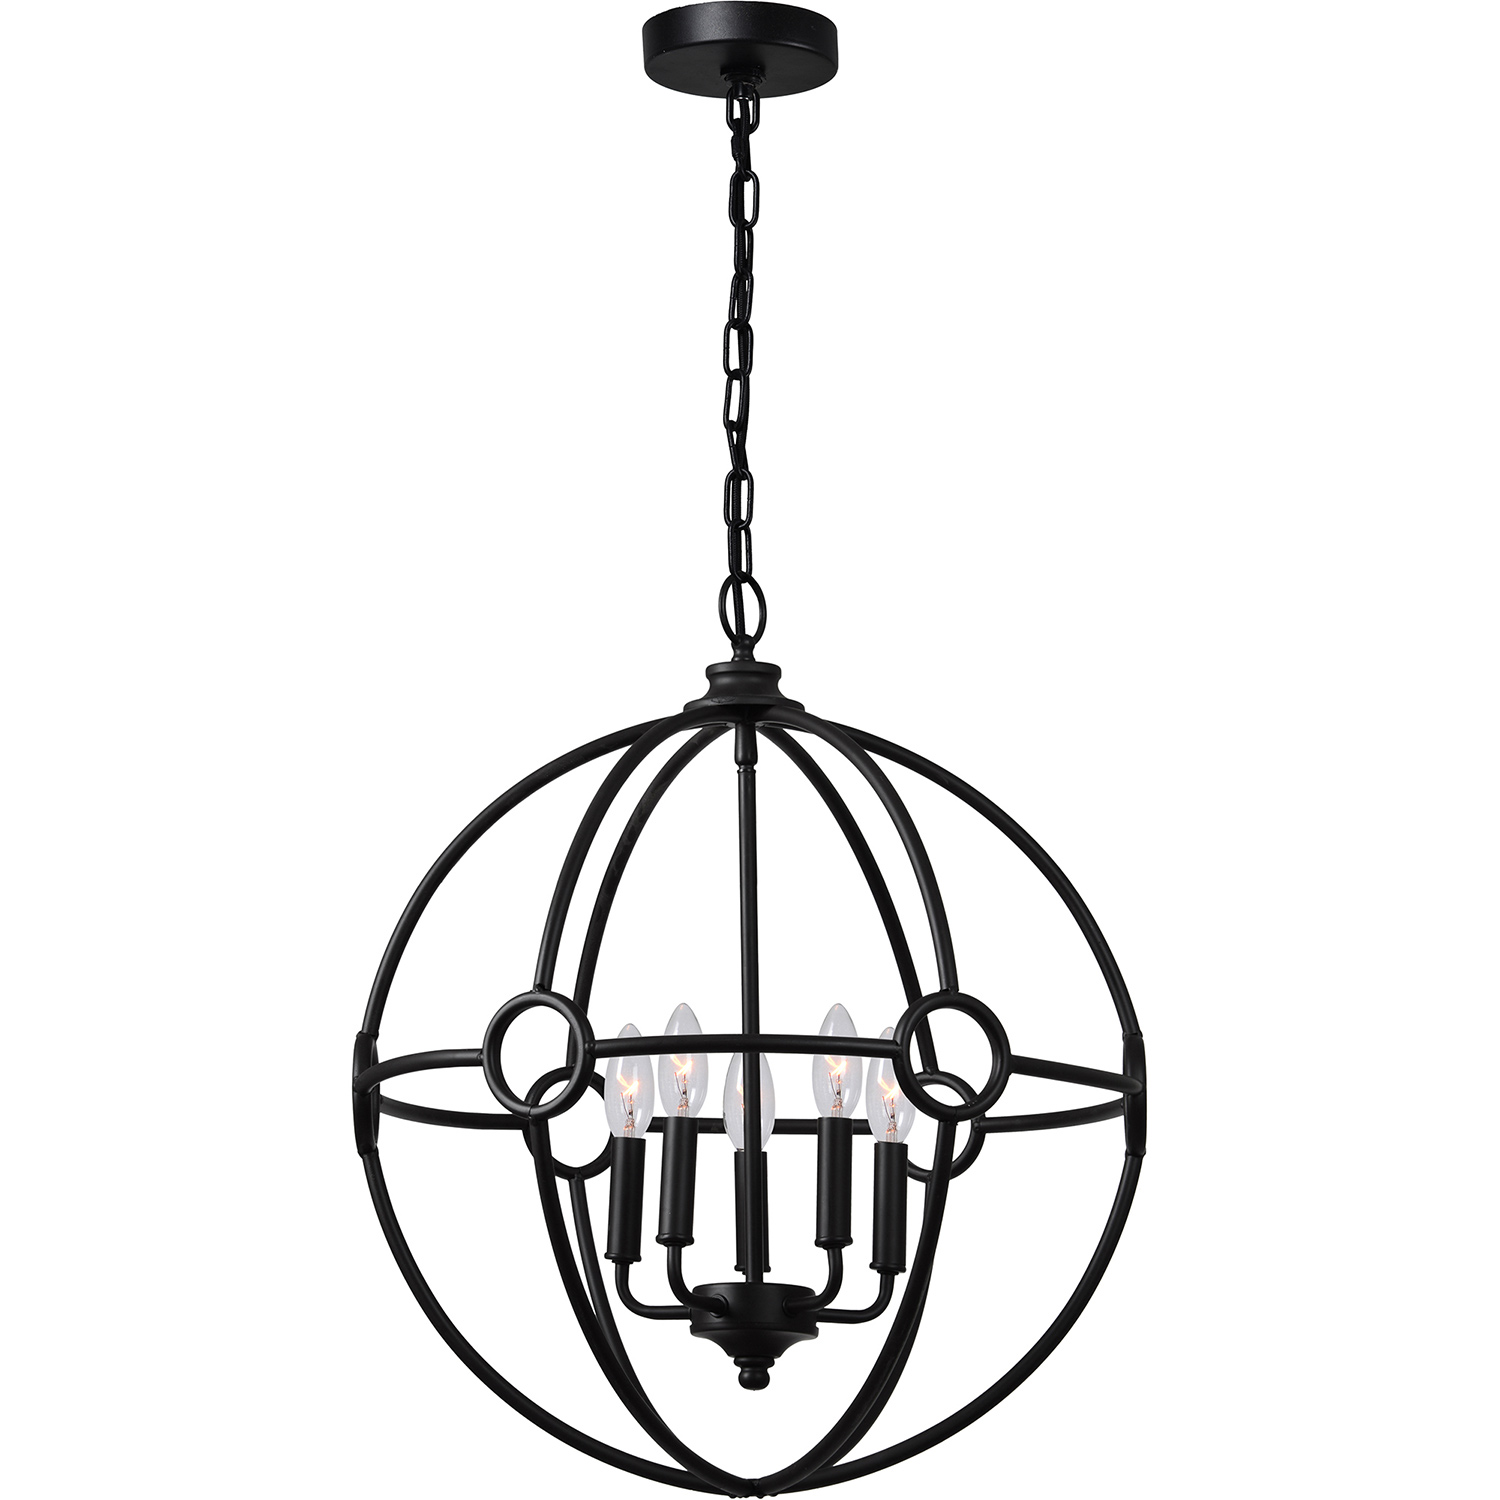 Ren-Wil Maida Ceiling Fixture - Brown